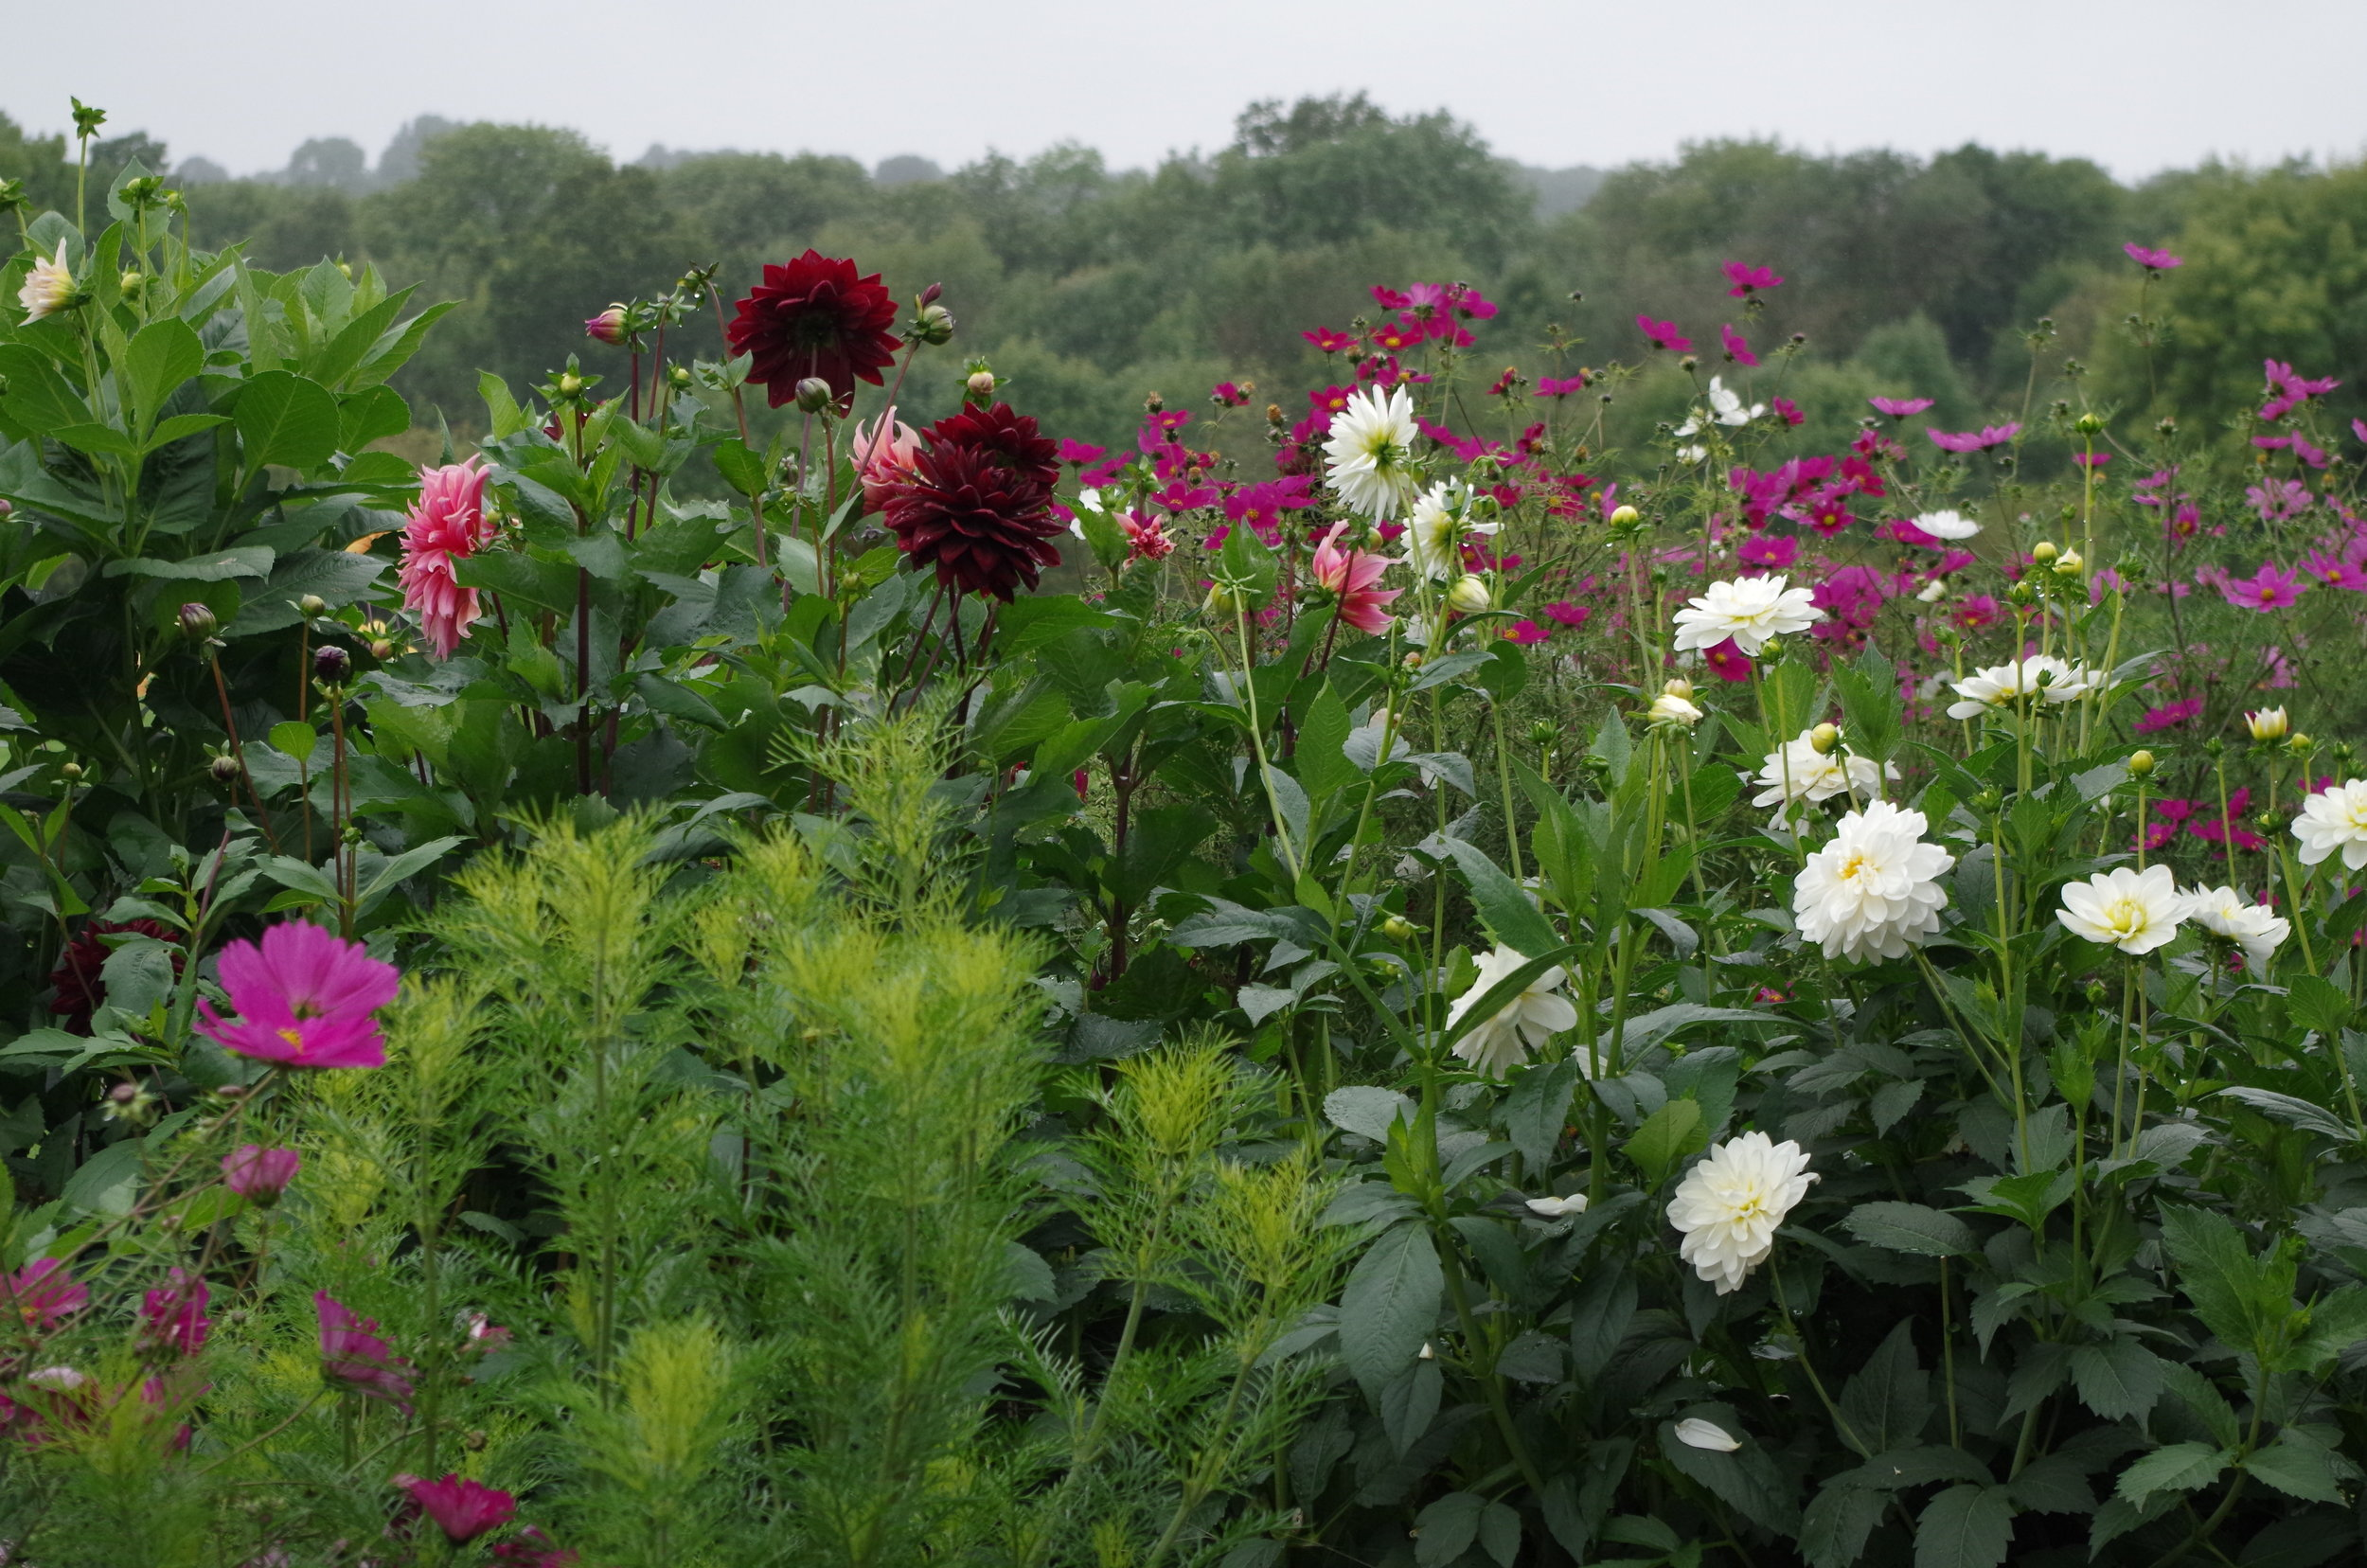 A VARIETY OF MIXED FLOWERS